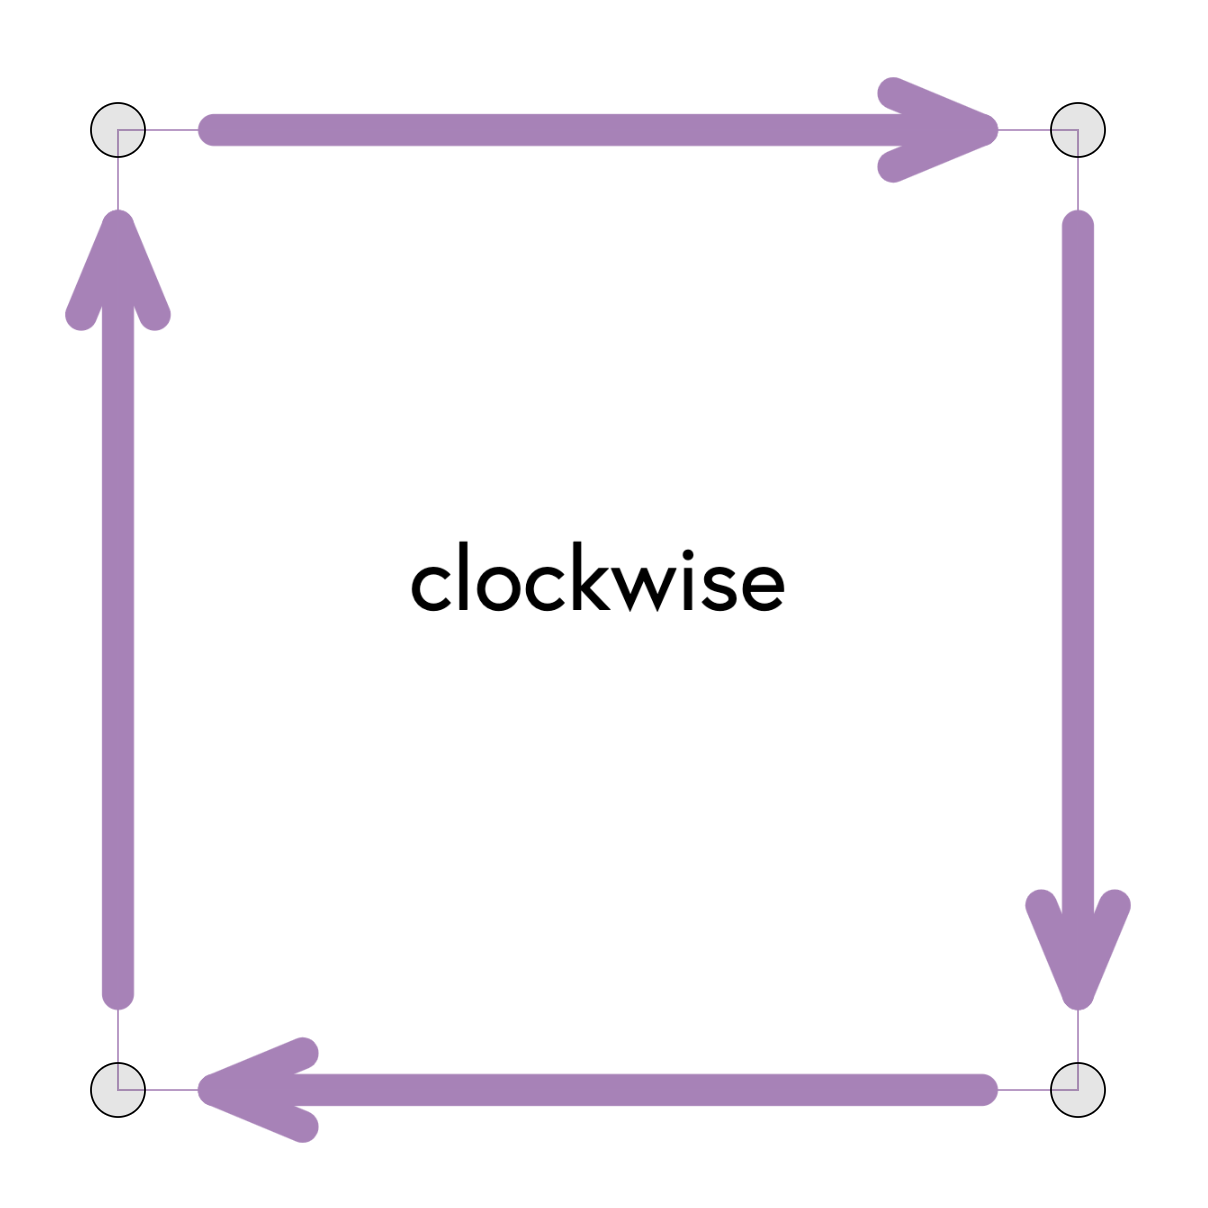 clockwise-example.png